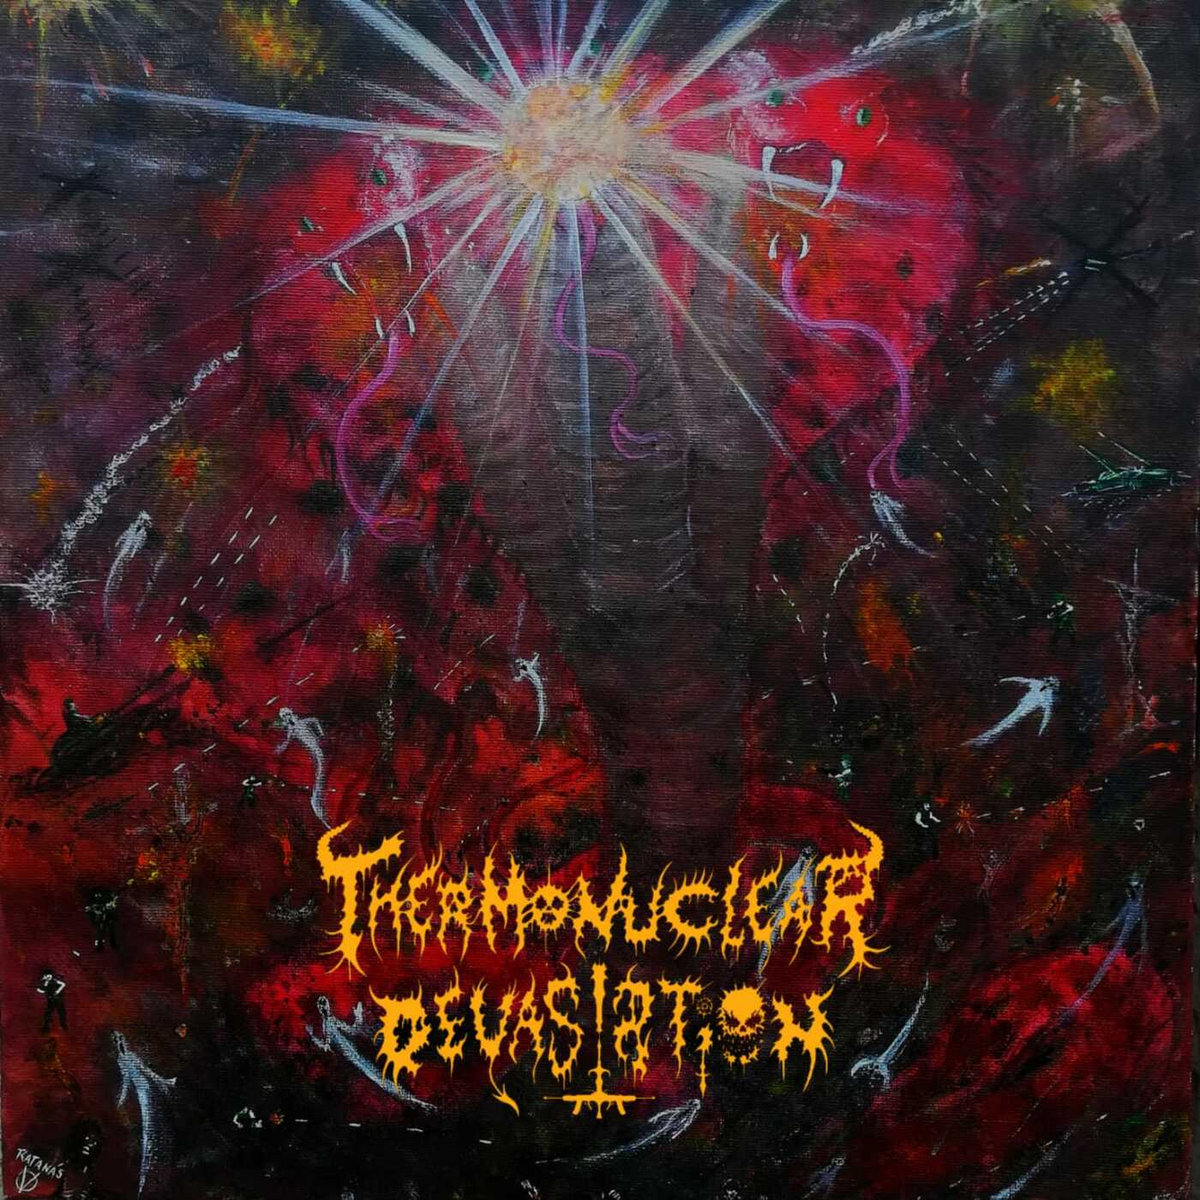 Thermonuclear Devastation - Worshipper of Darkness (2020)